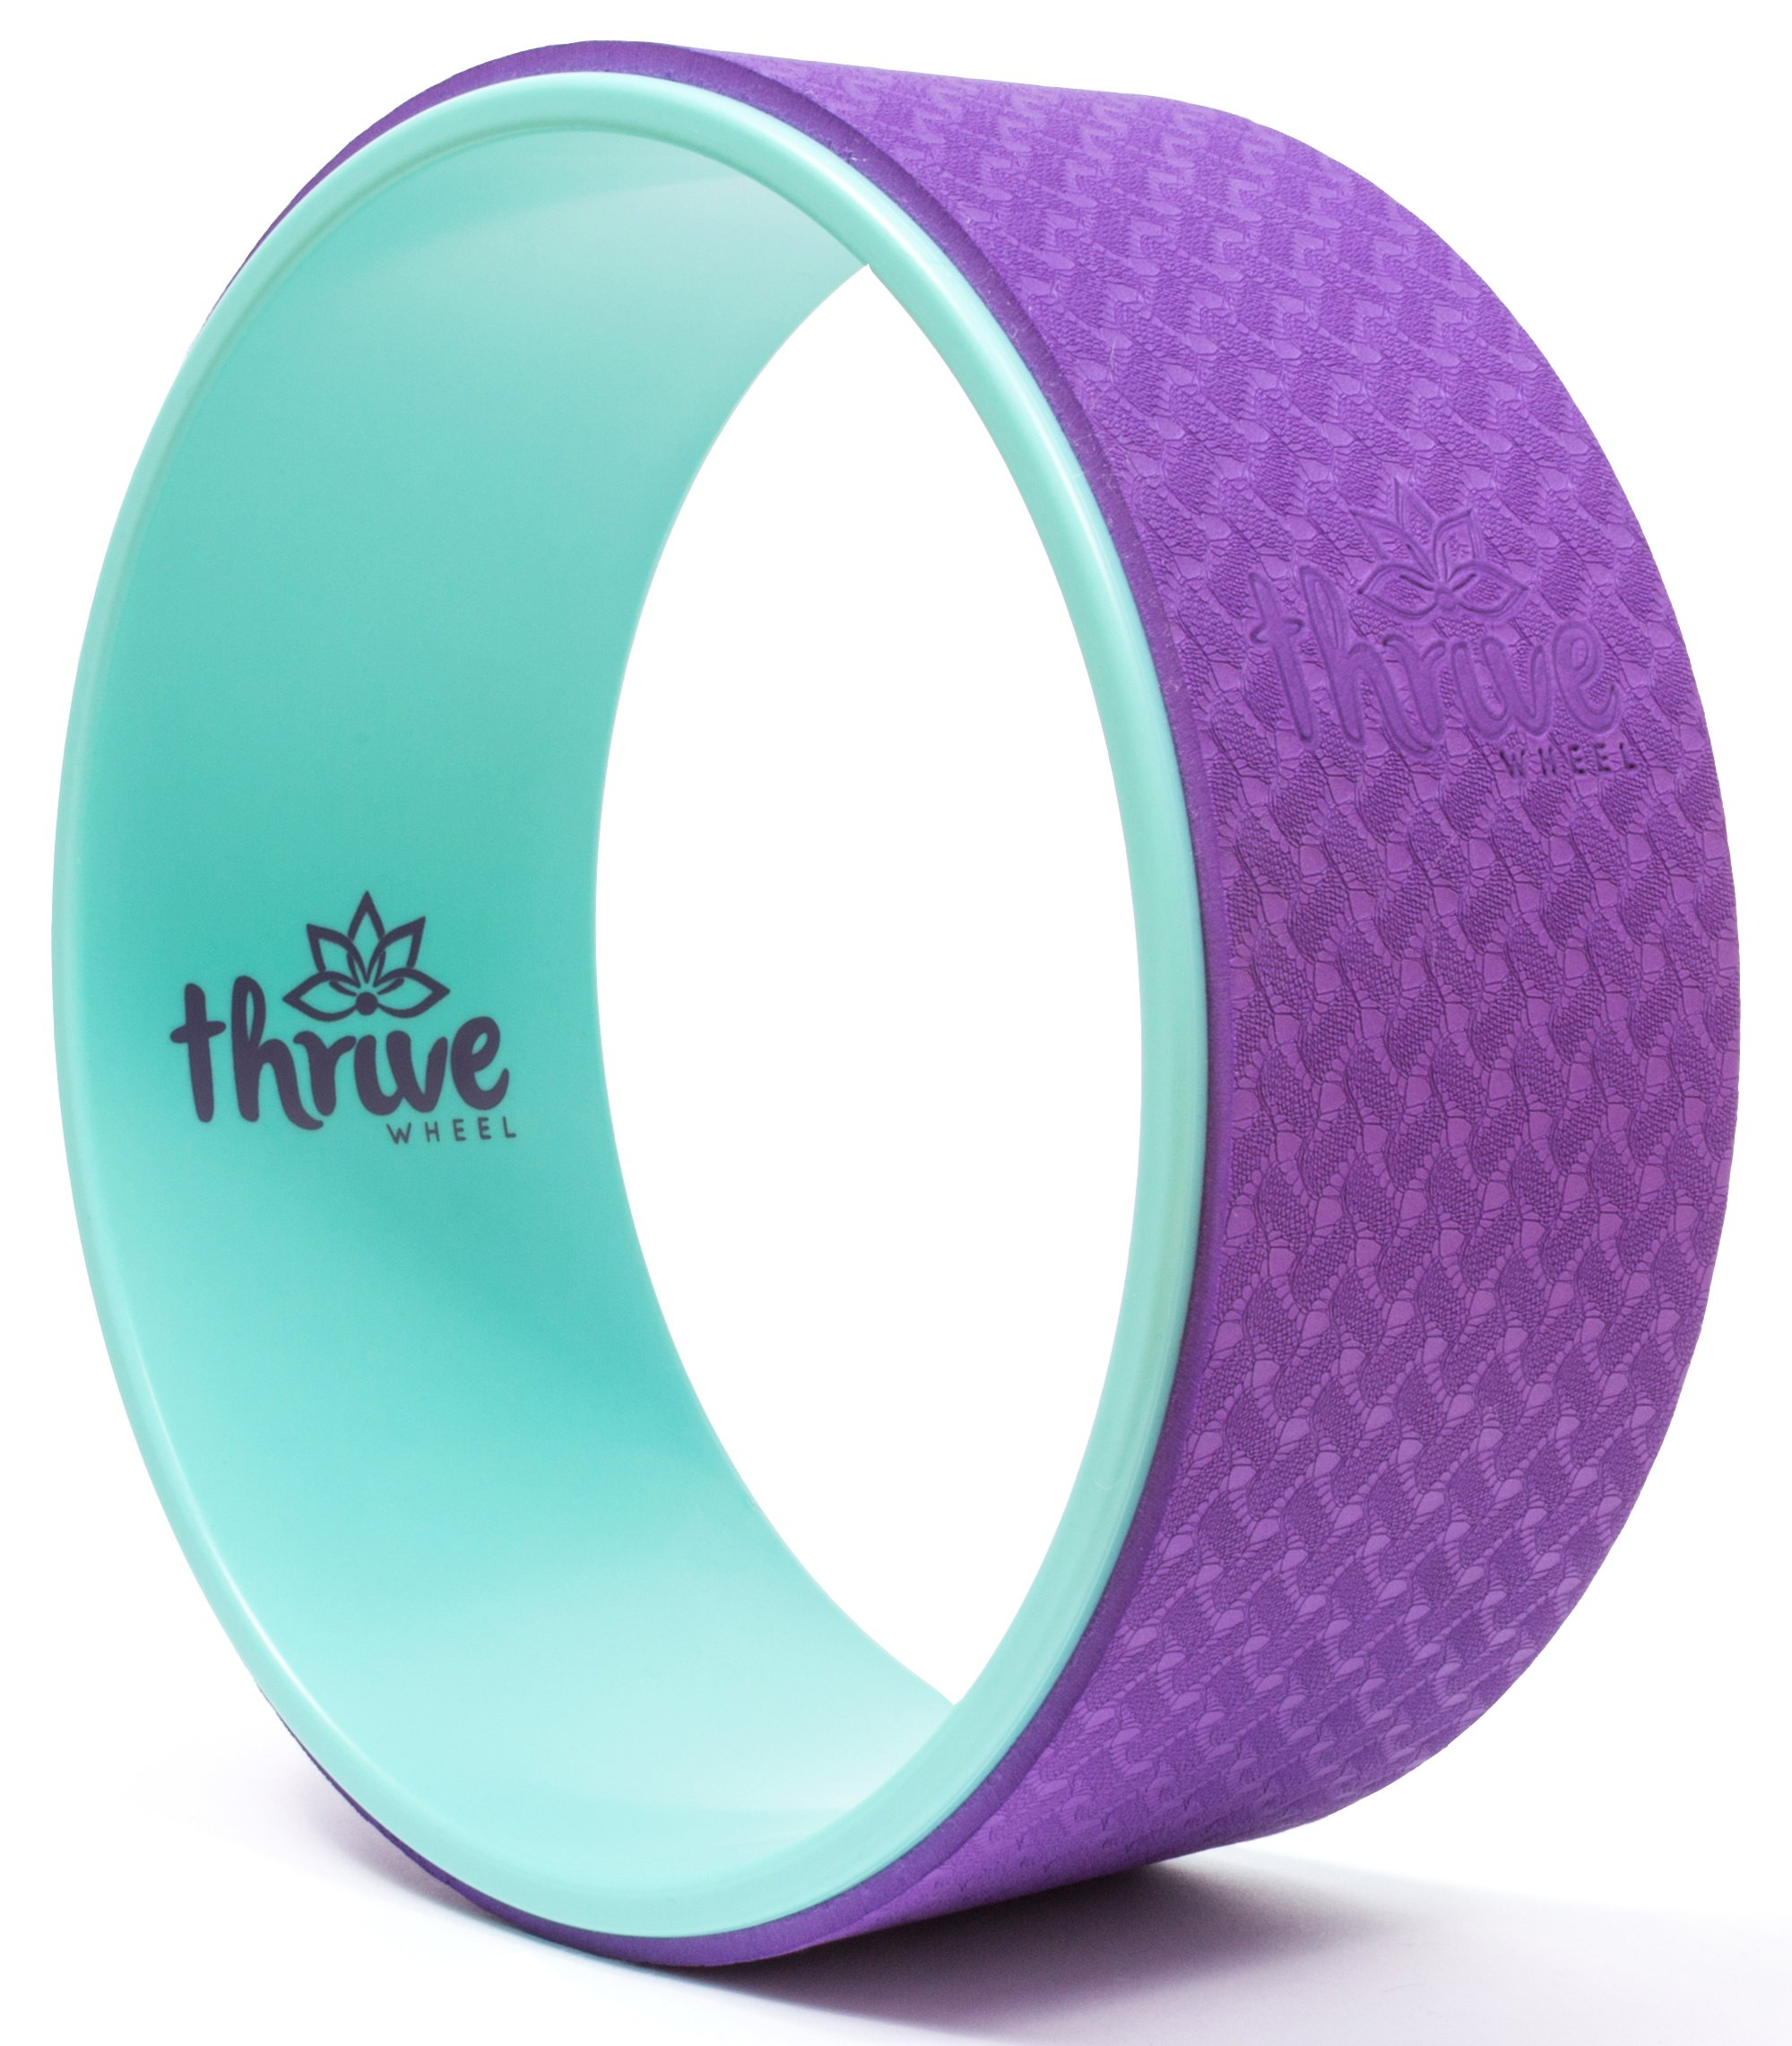 Yoga Wheel w/FREE Online Video Tutorials - Durable & Comfortable Premium Dharma Yoga Wheel for Stretching, Back/Spine Pain, Improving Yoga Poses & Backbends, Flexibility & Core Strength!